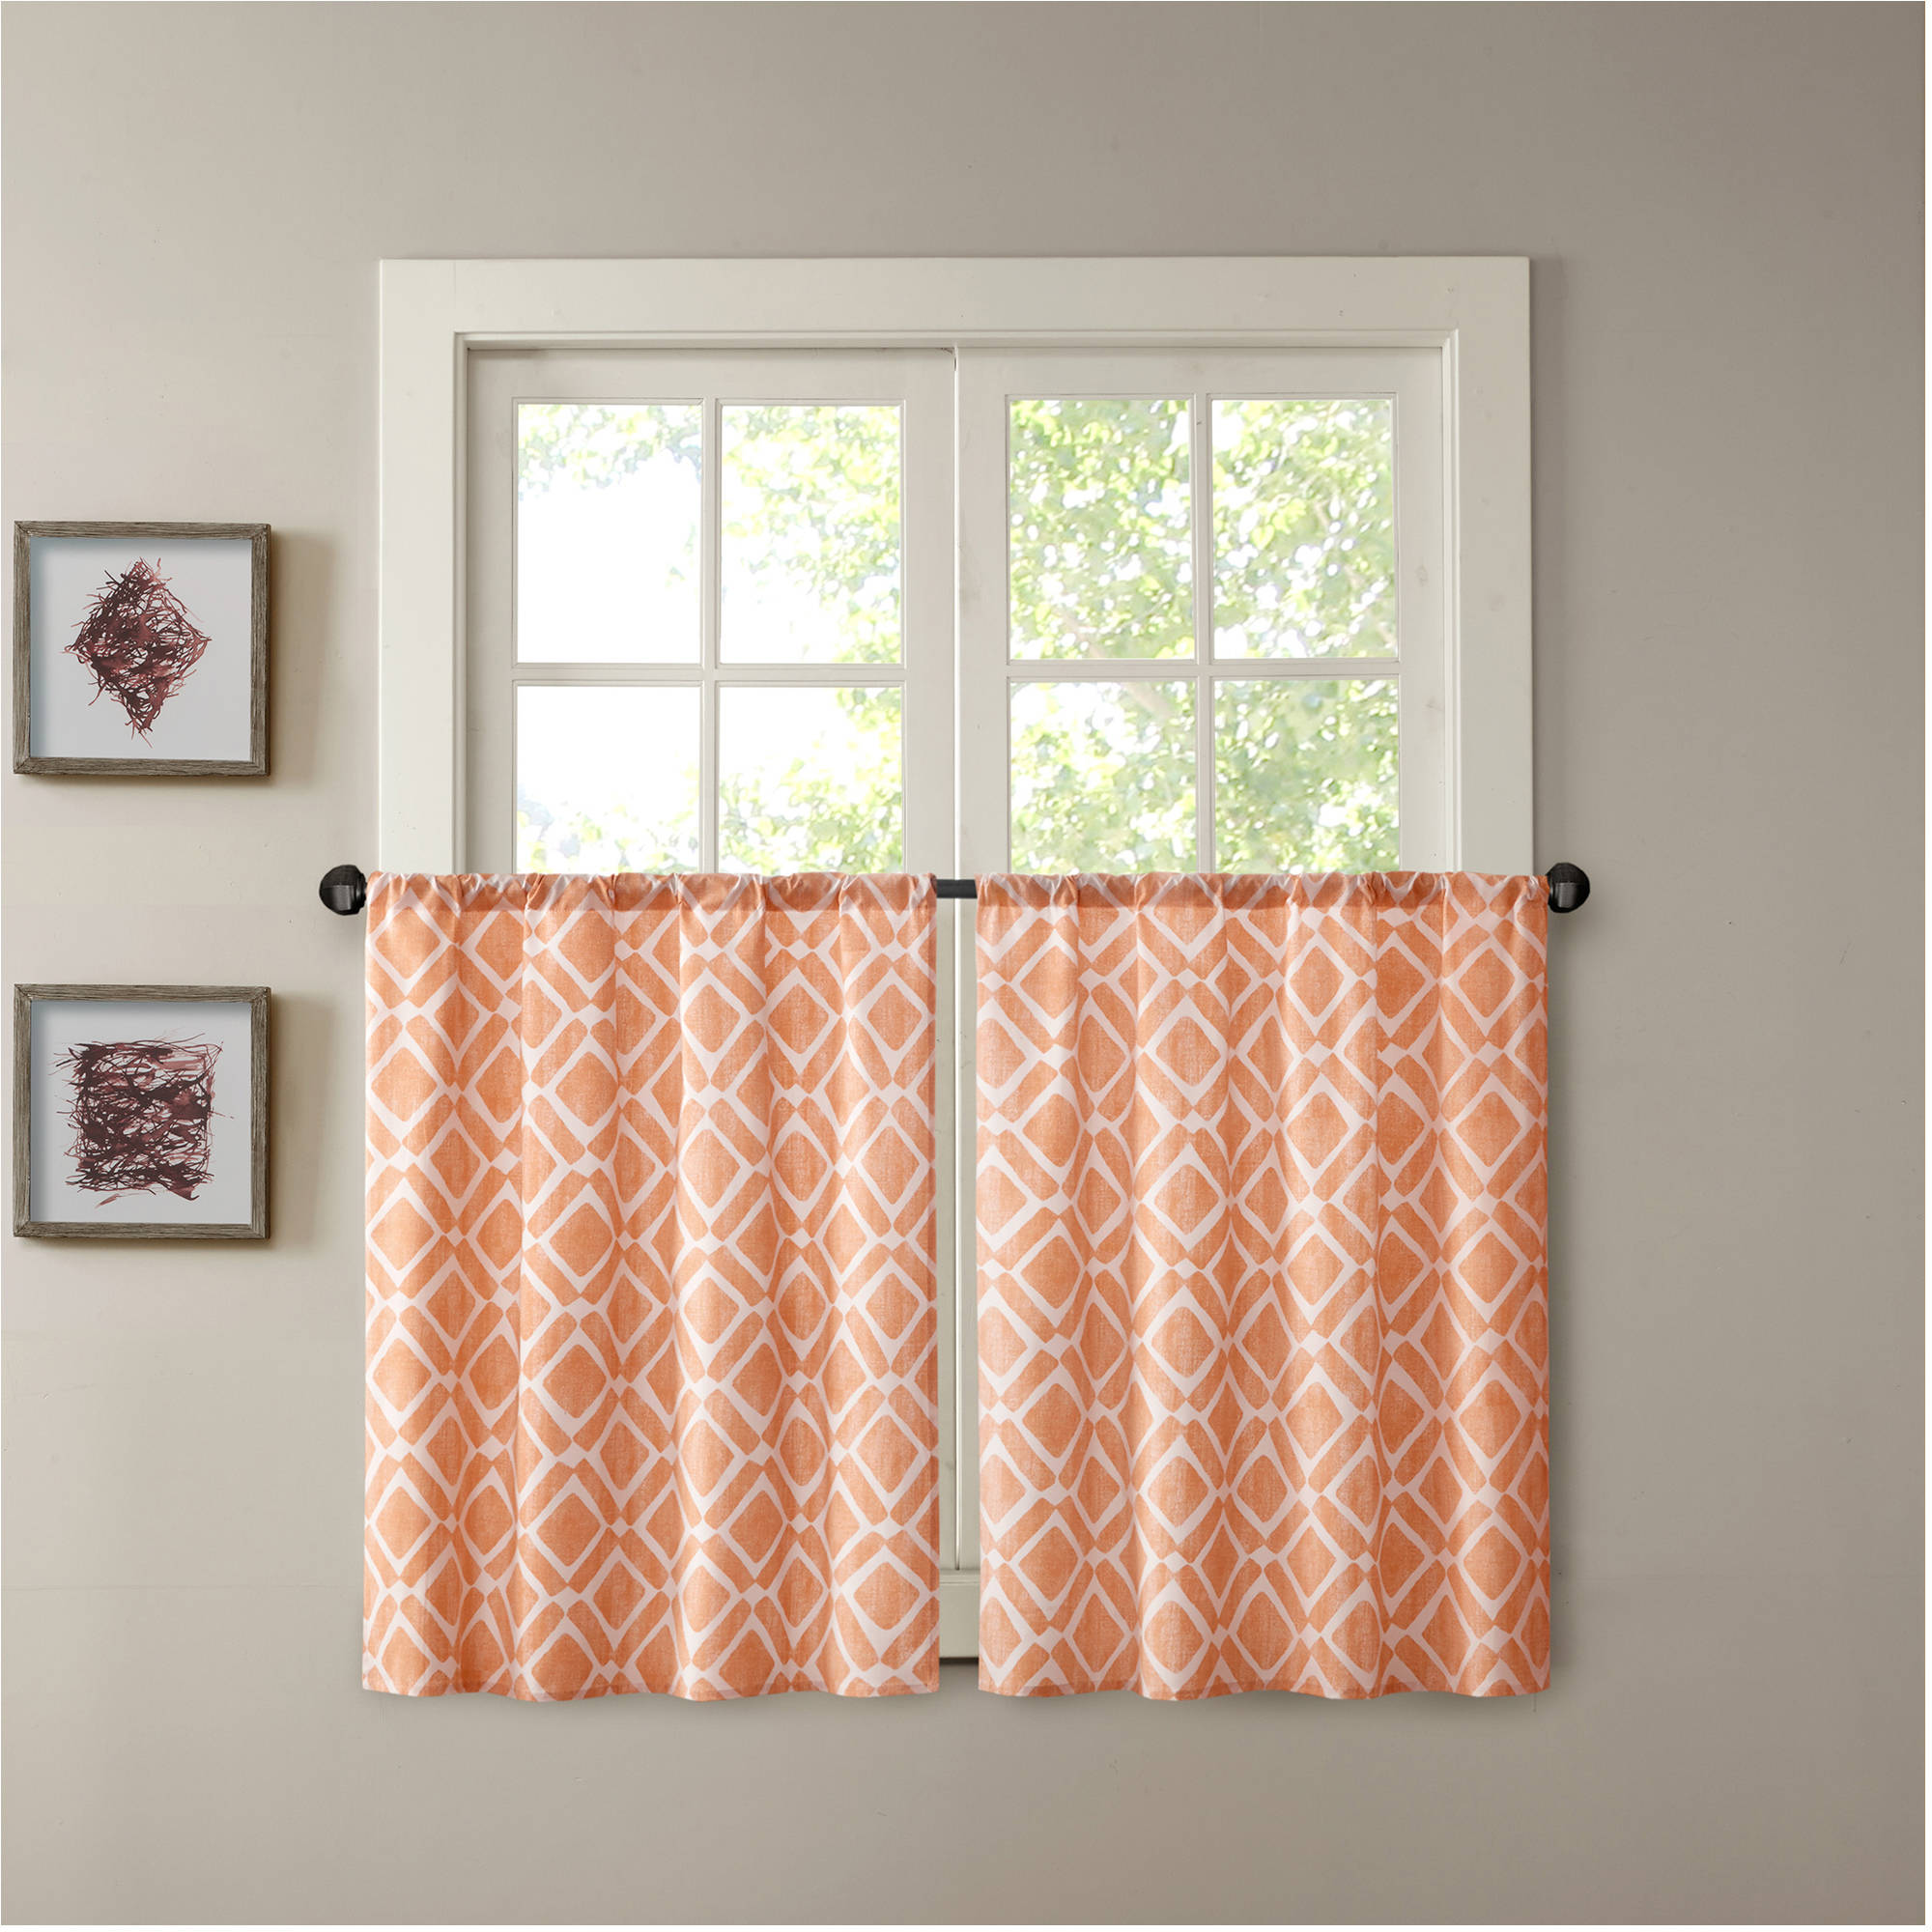 Superieur Home Essence Natalie Printed Diamond Kitchen Curtain   Walmart.com